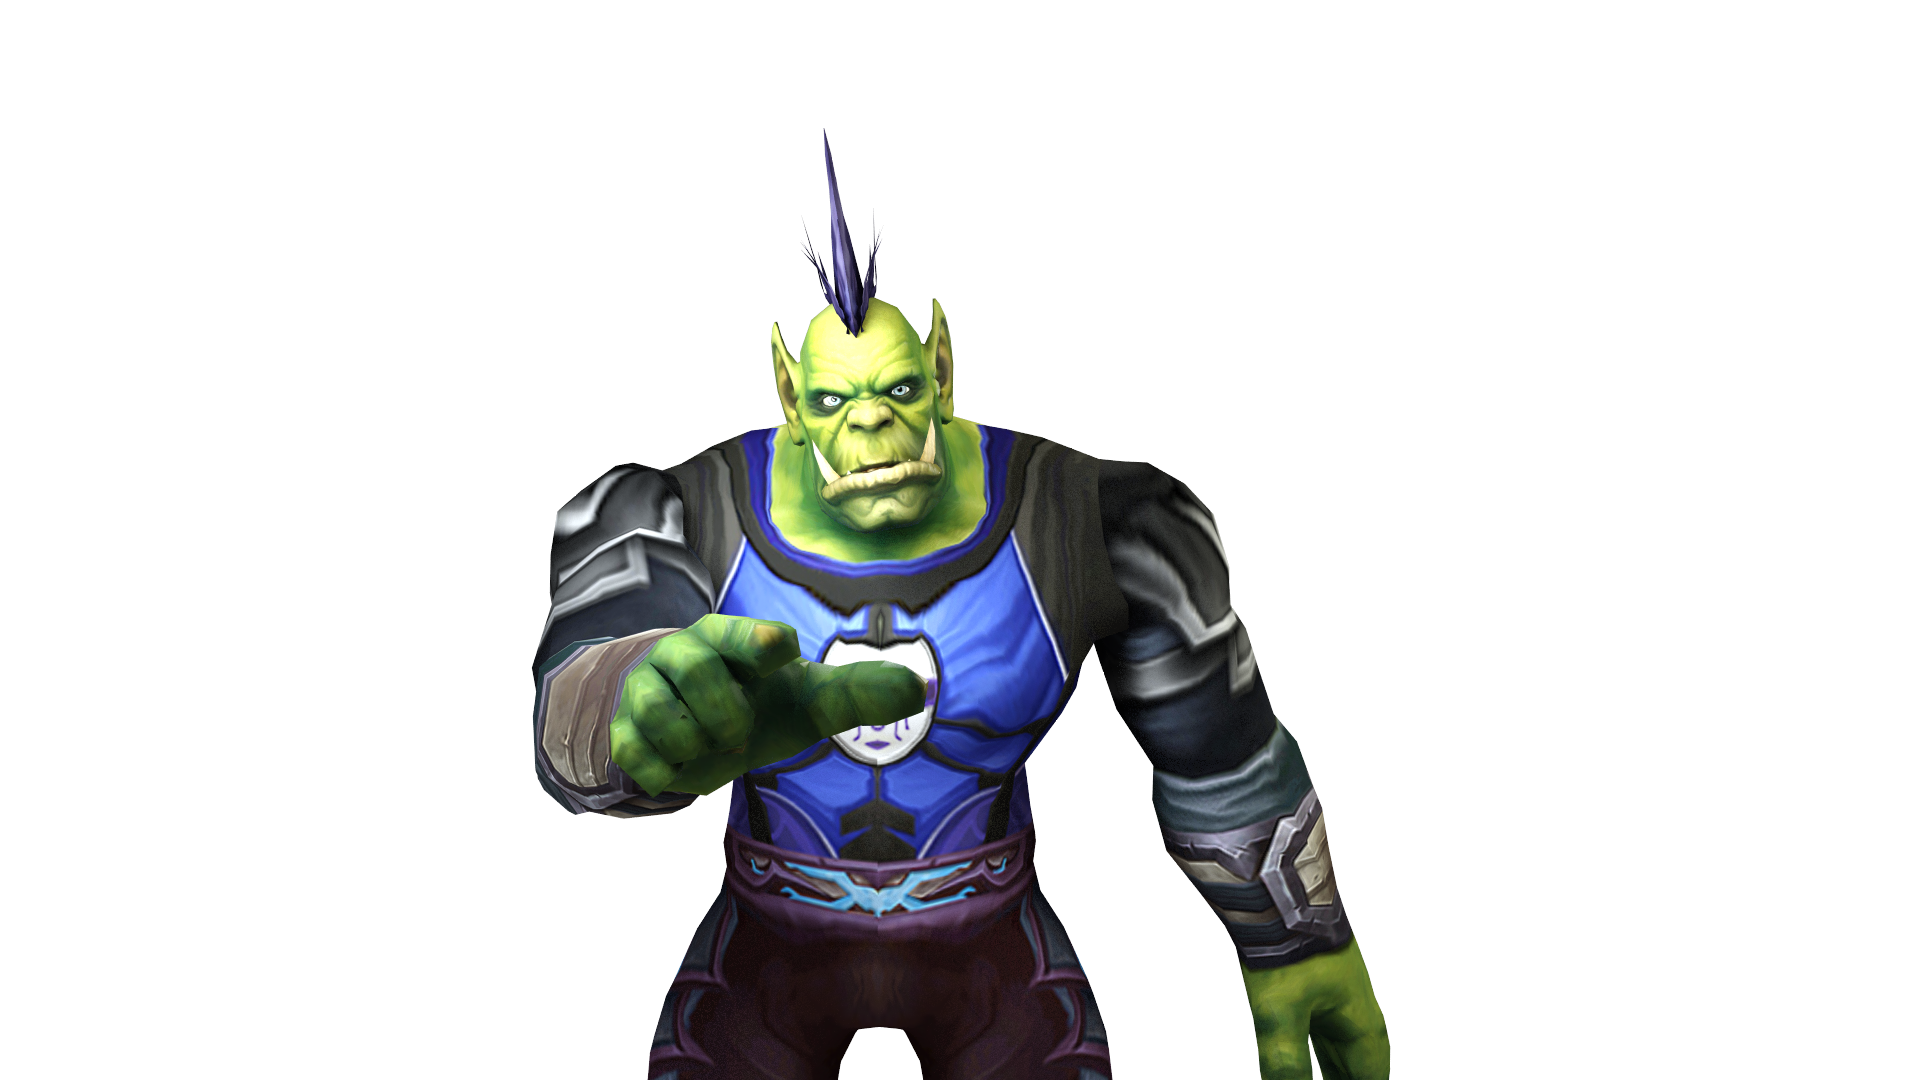 uploads orc orc PNG30 64